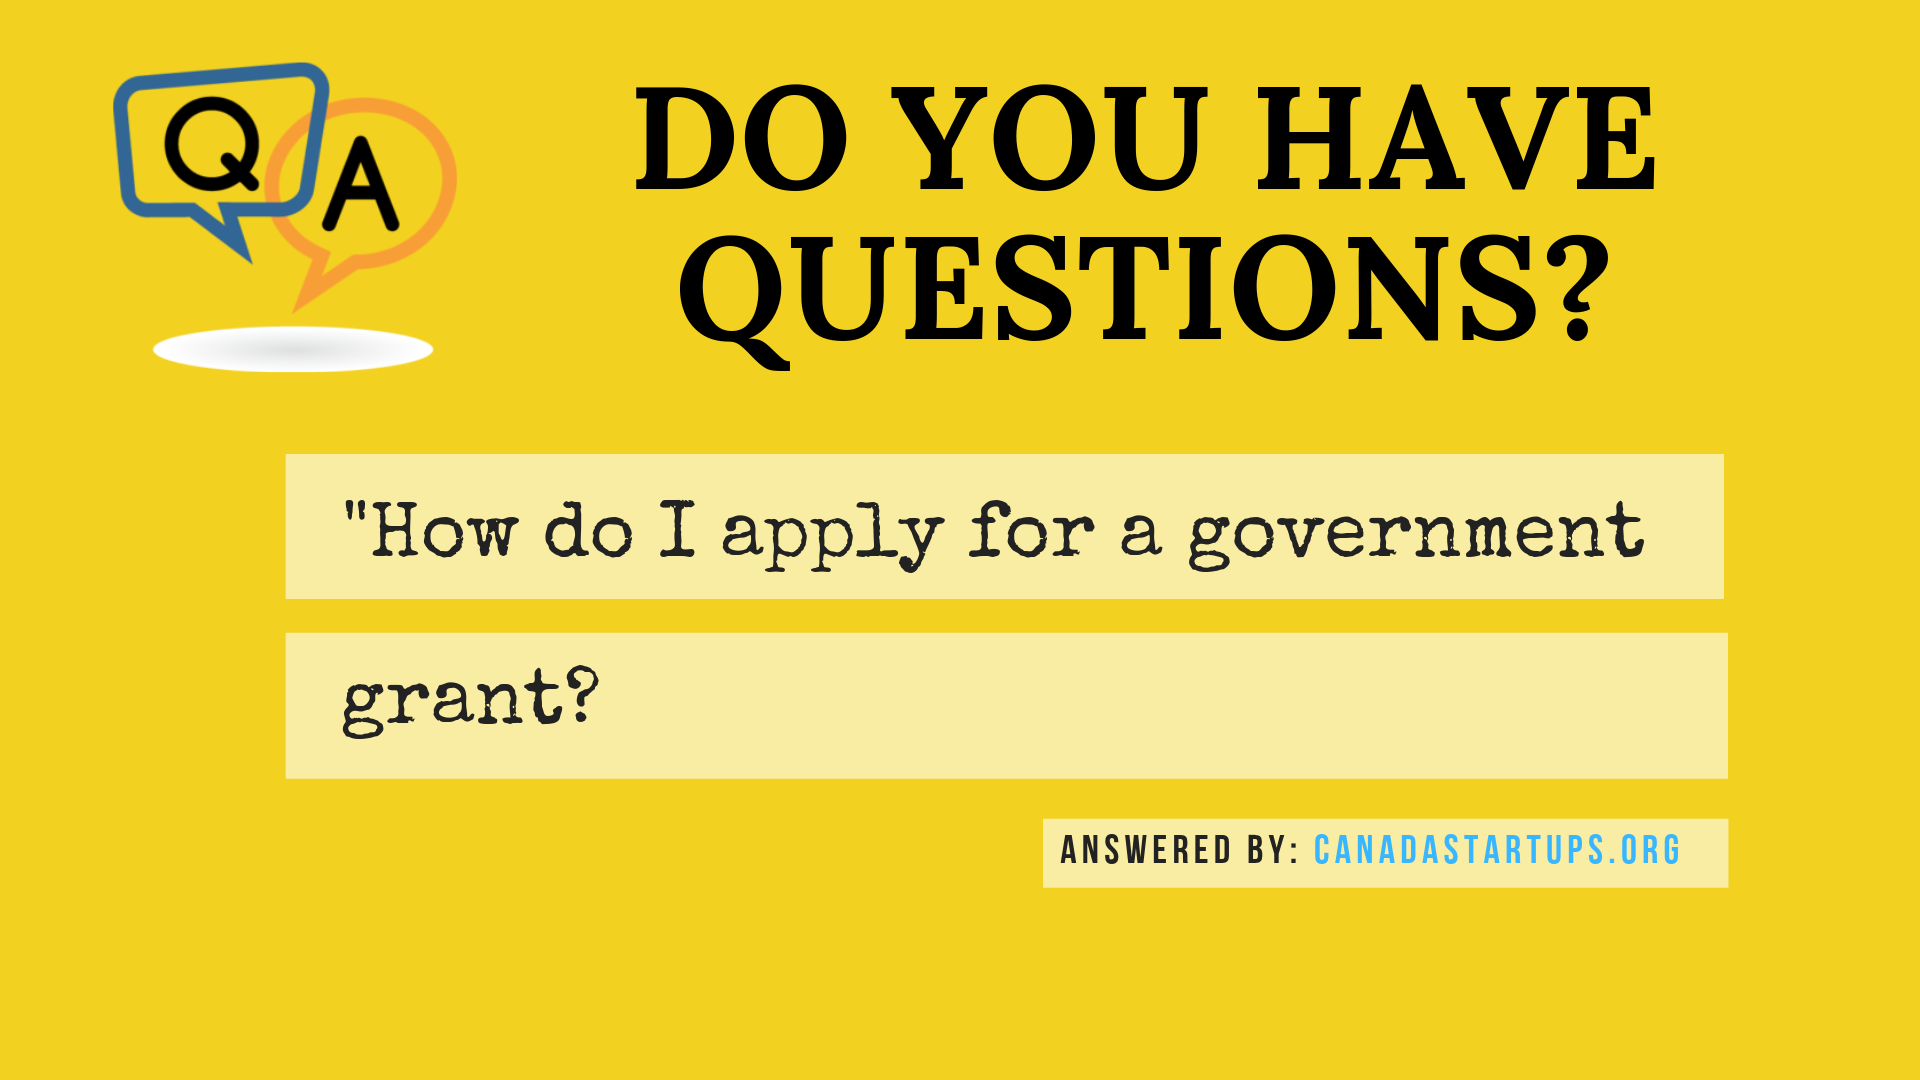 How do I apply for a government grant